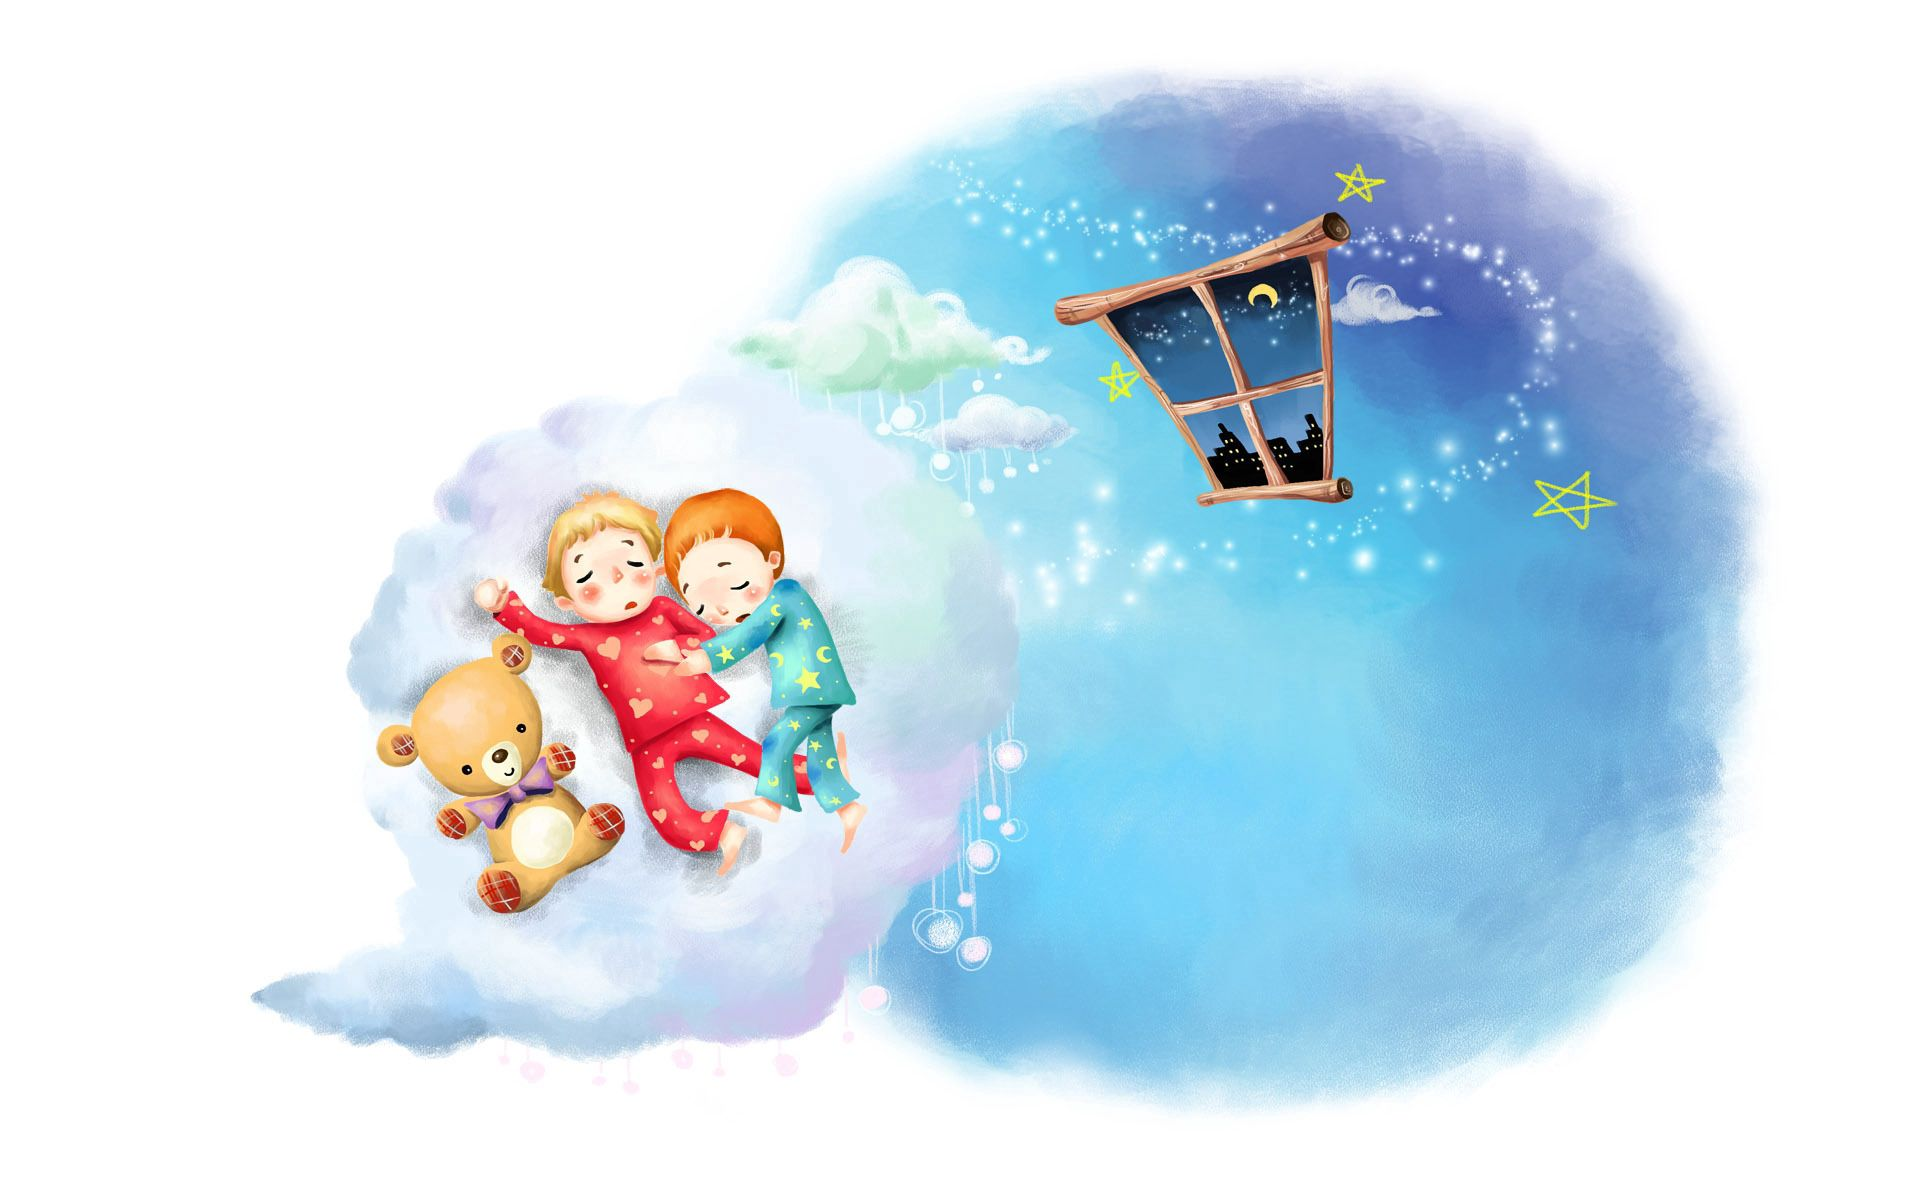 56468 download wallpaper Love, Picture, Drawing, Clouds, Toddlers, Kids, Sleep, Dream, Childhood, Pajamas, Window, Month, Stars, Teddy Bear screensavers and pictures for free